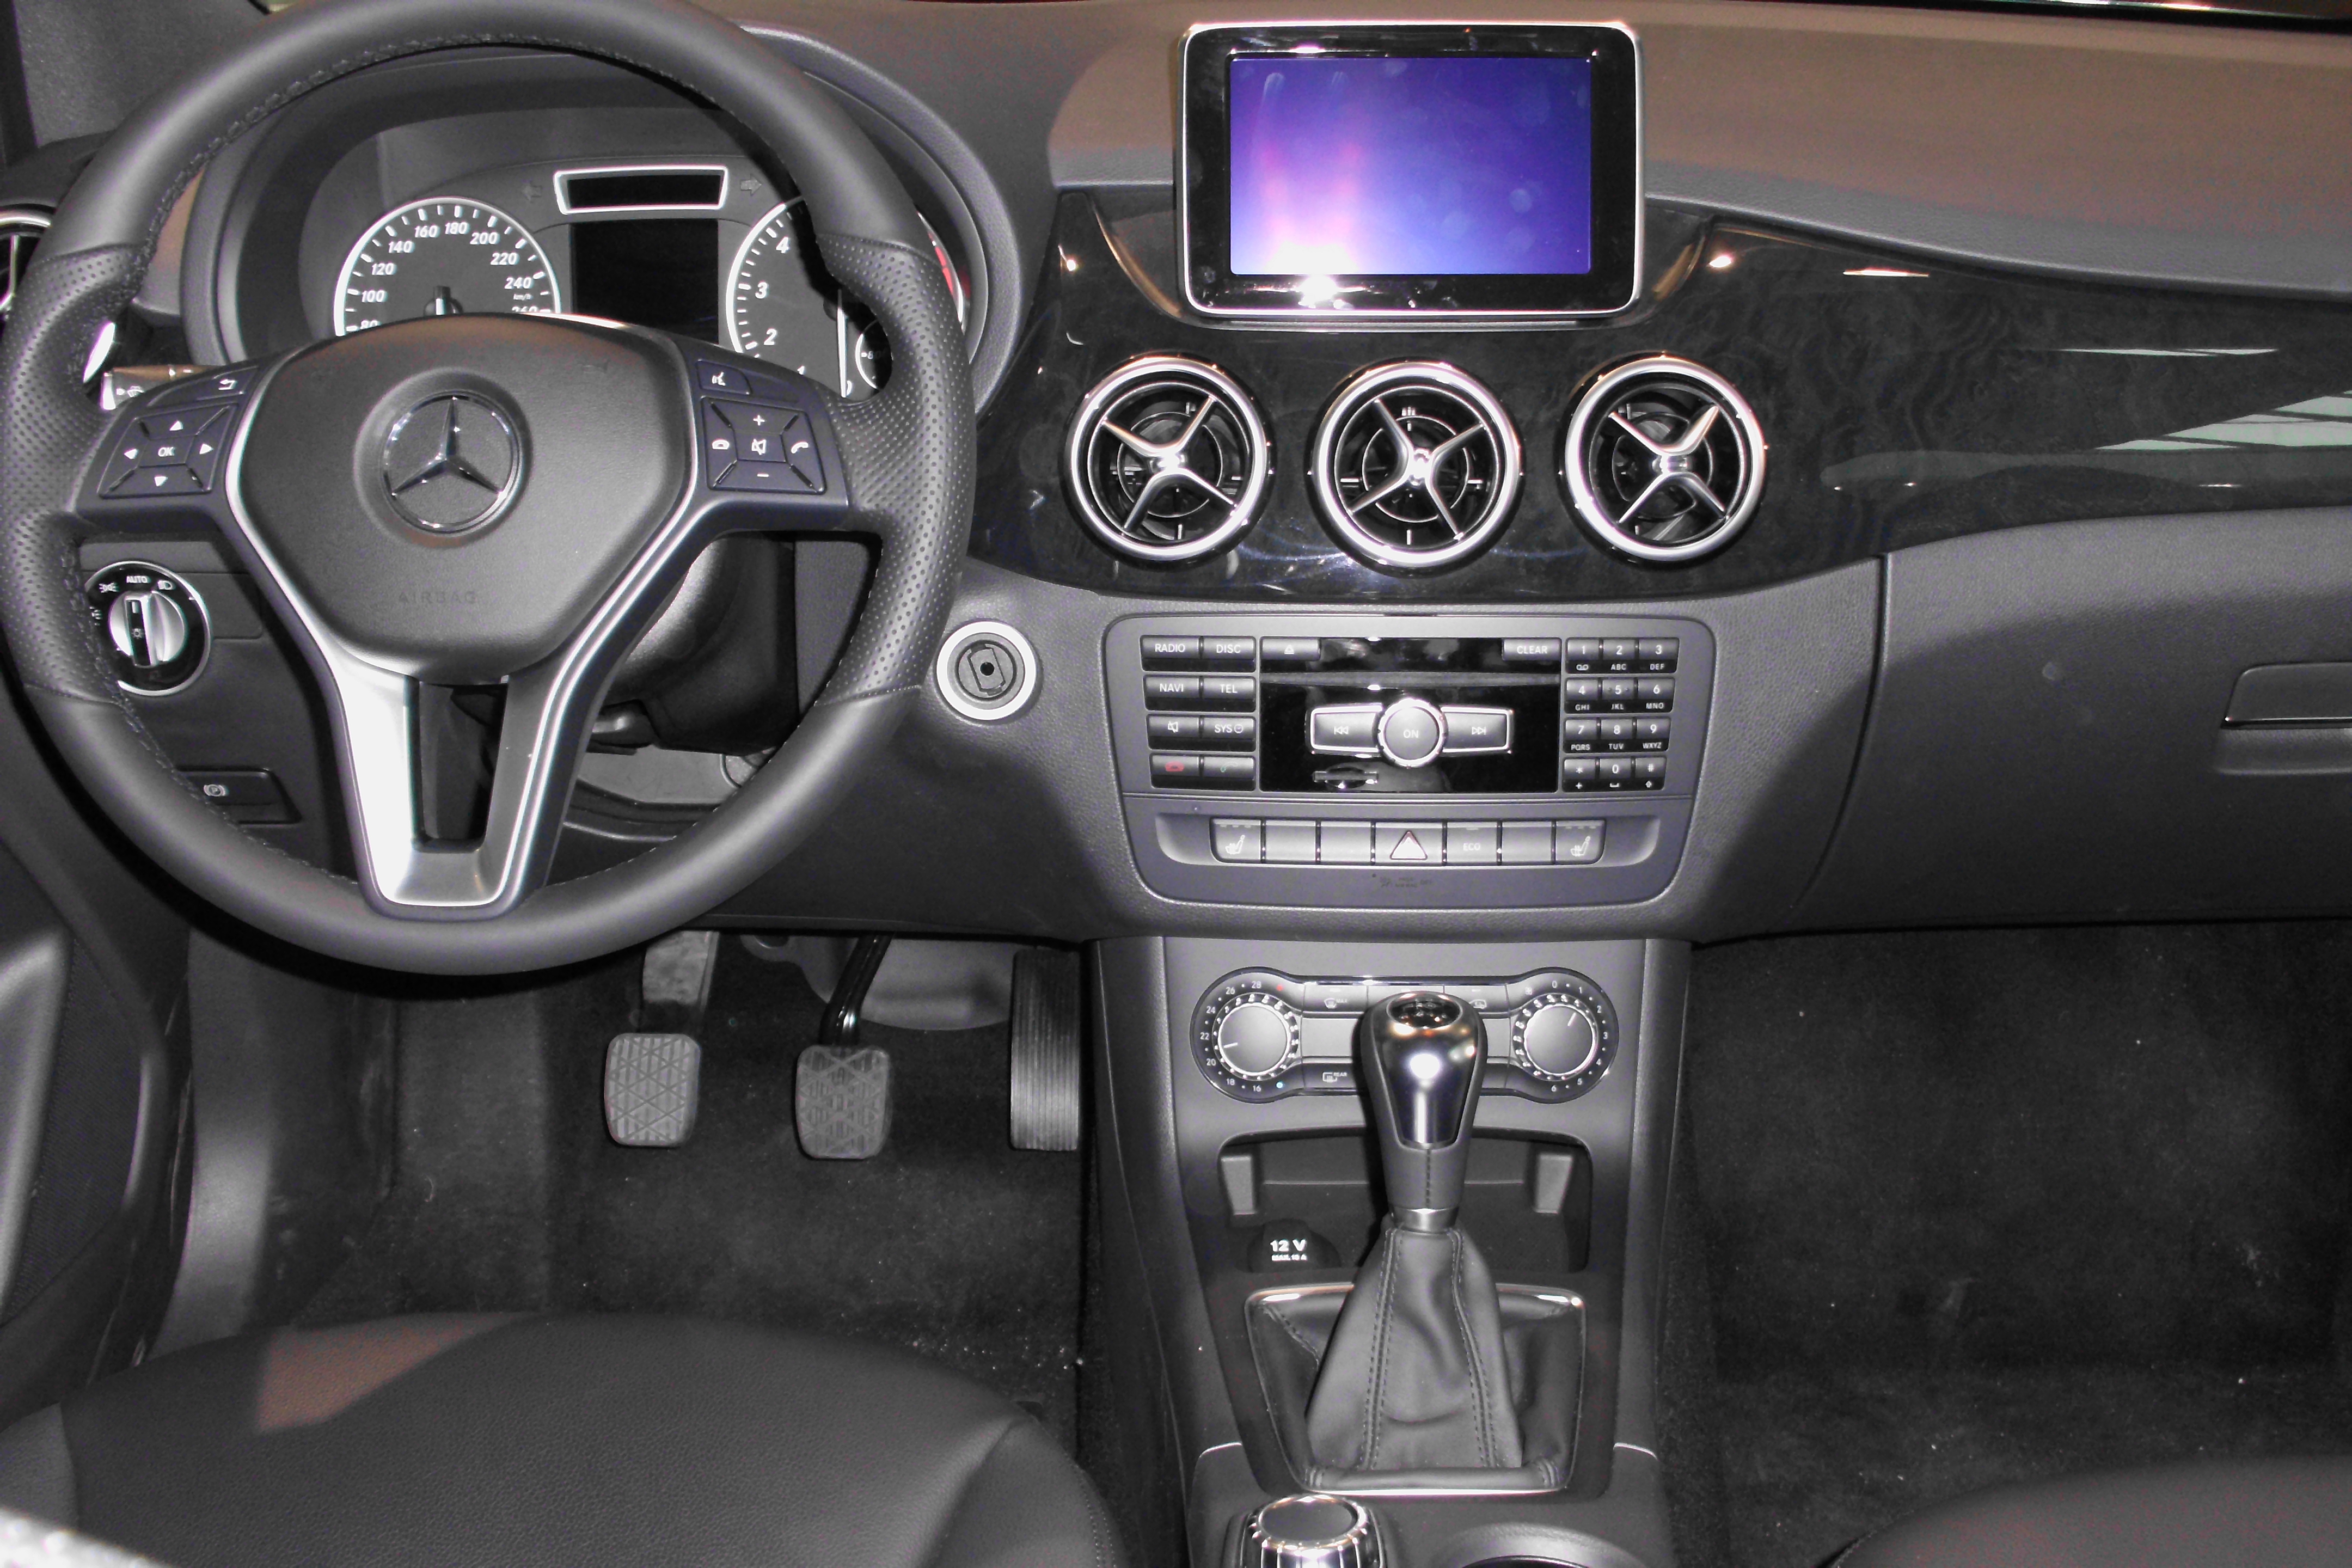 file instrument cluster mercedes benz b 200 w246 jpg wikimedia commons. Black Bedroom Furniture Sets. Home Design Ideas